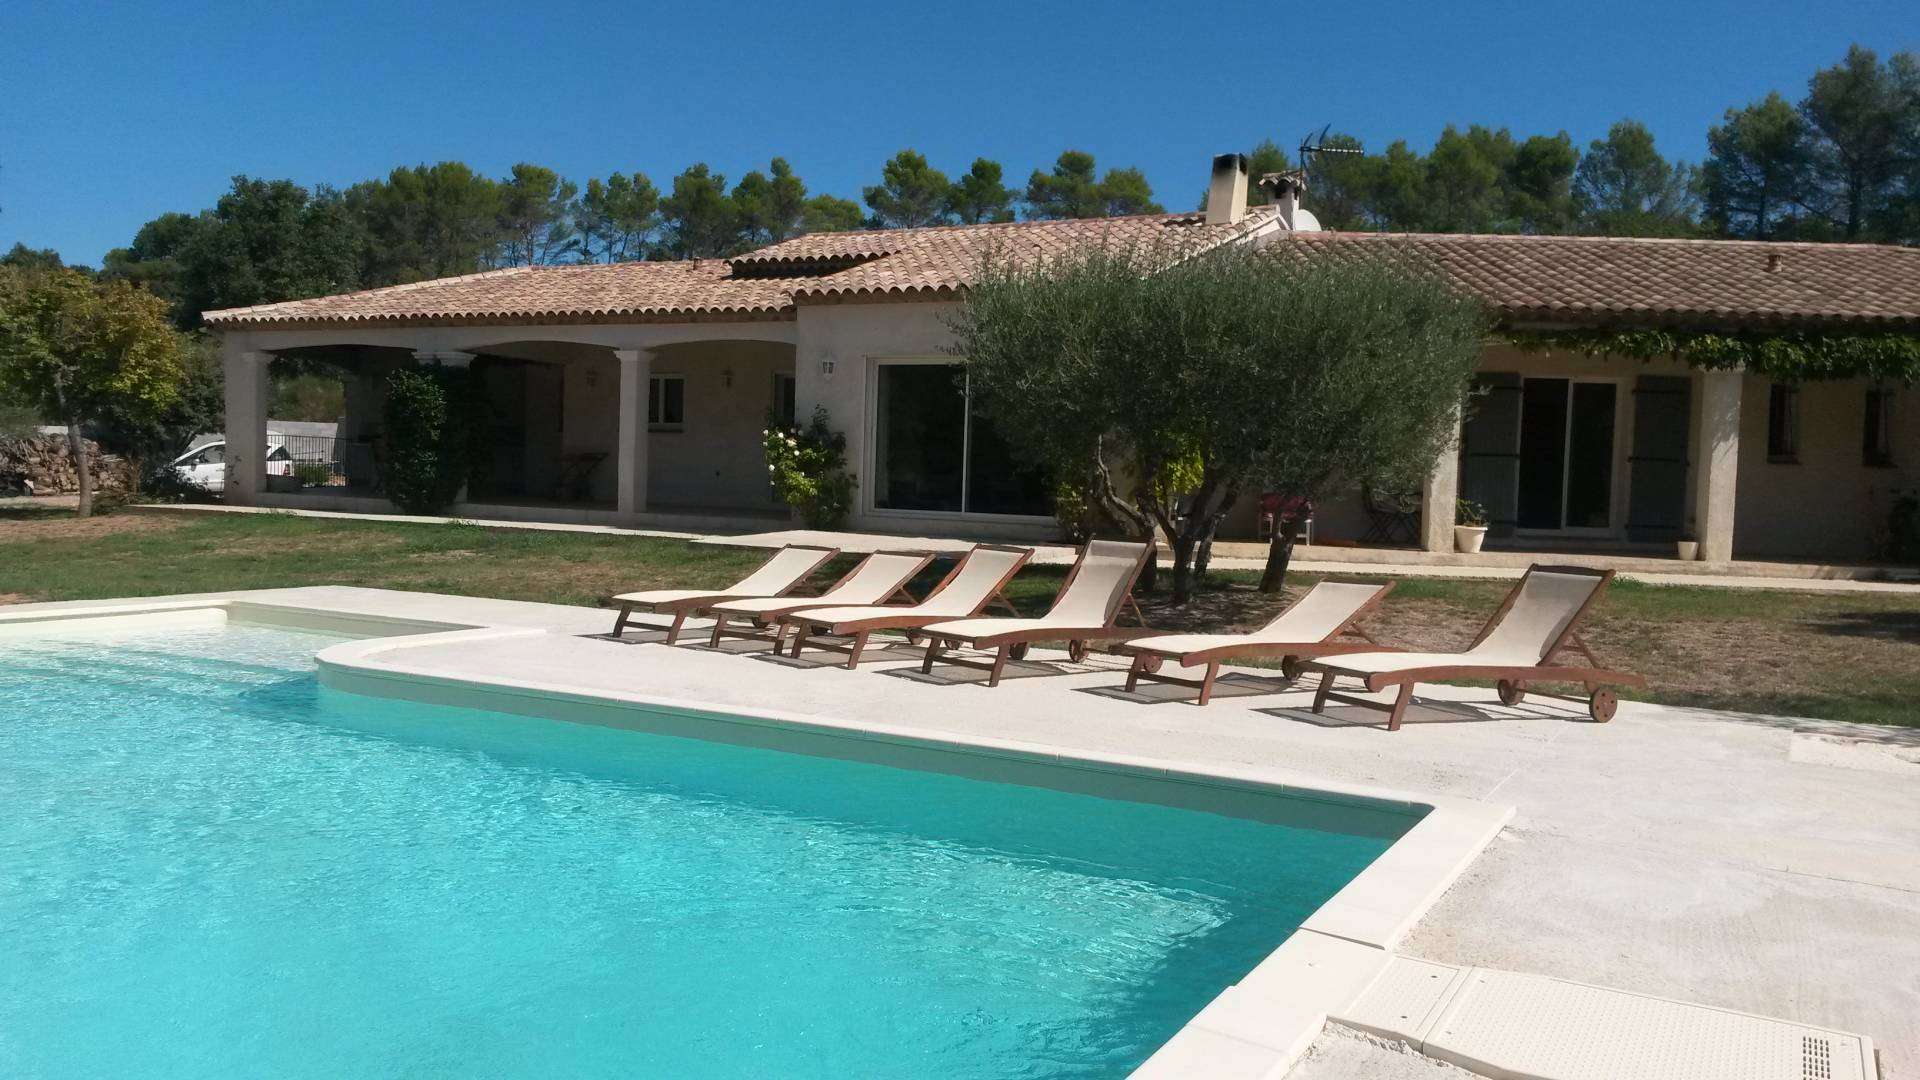 LORGUES NICE ONE LEVEL VILLA WITH SWIMMING POOL